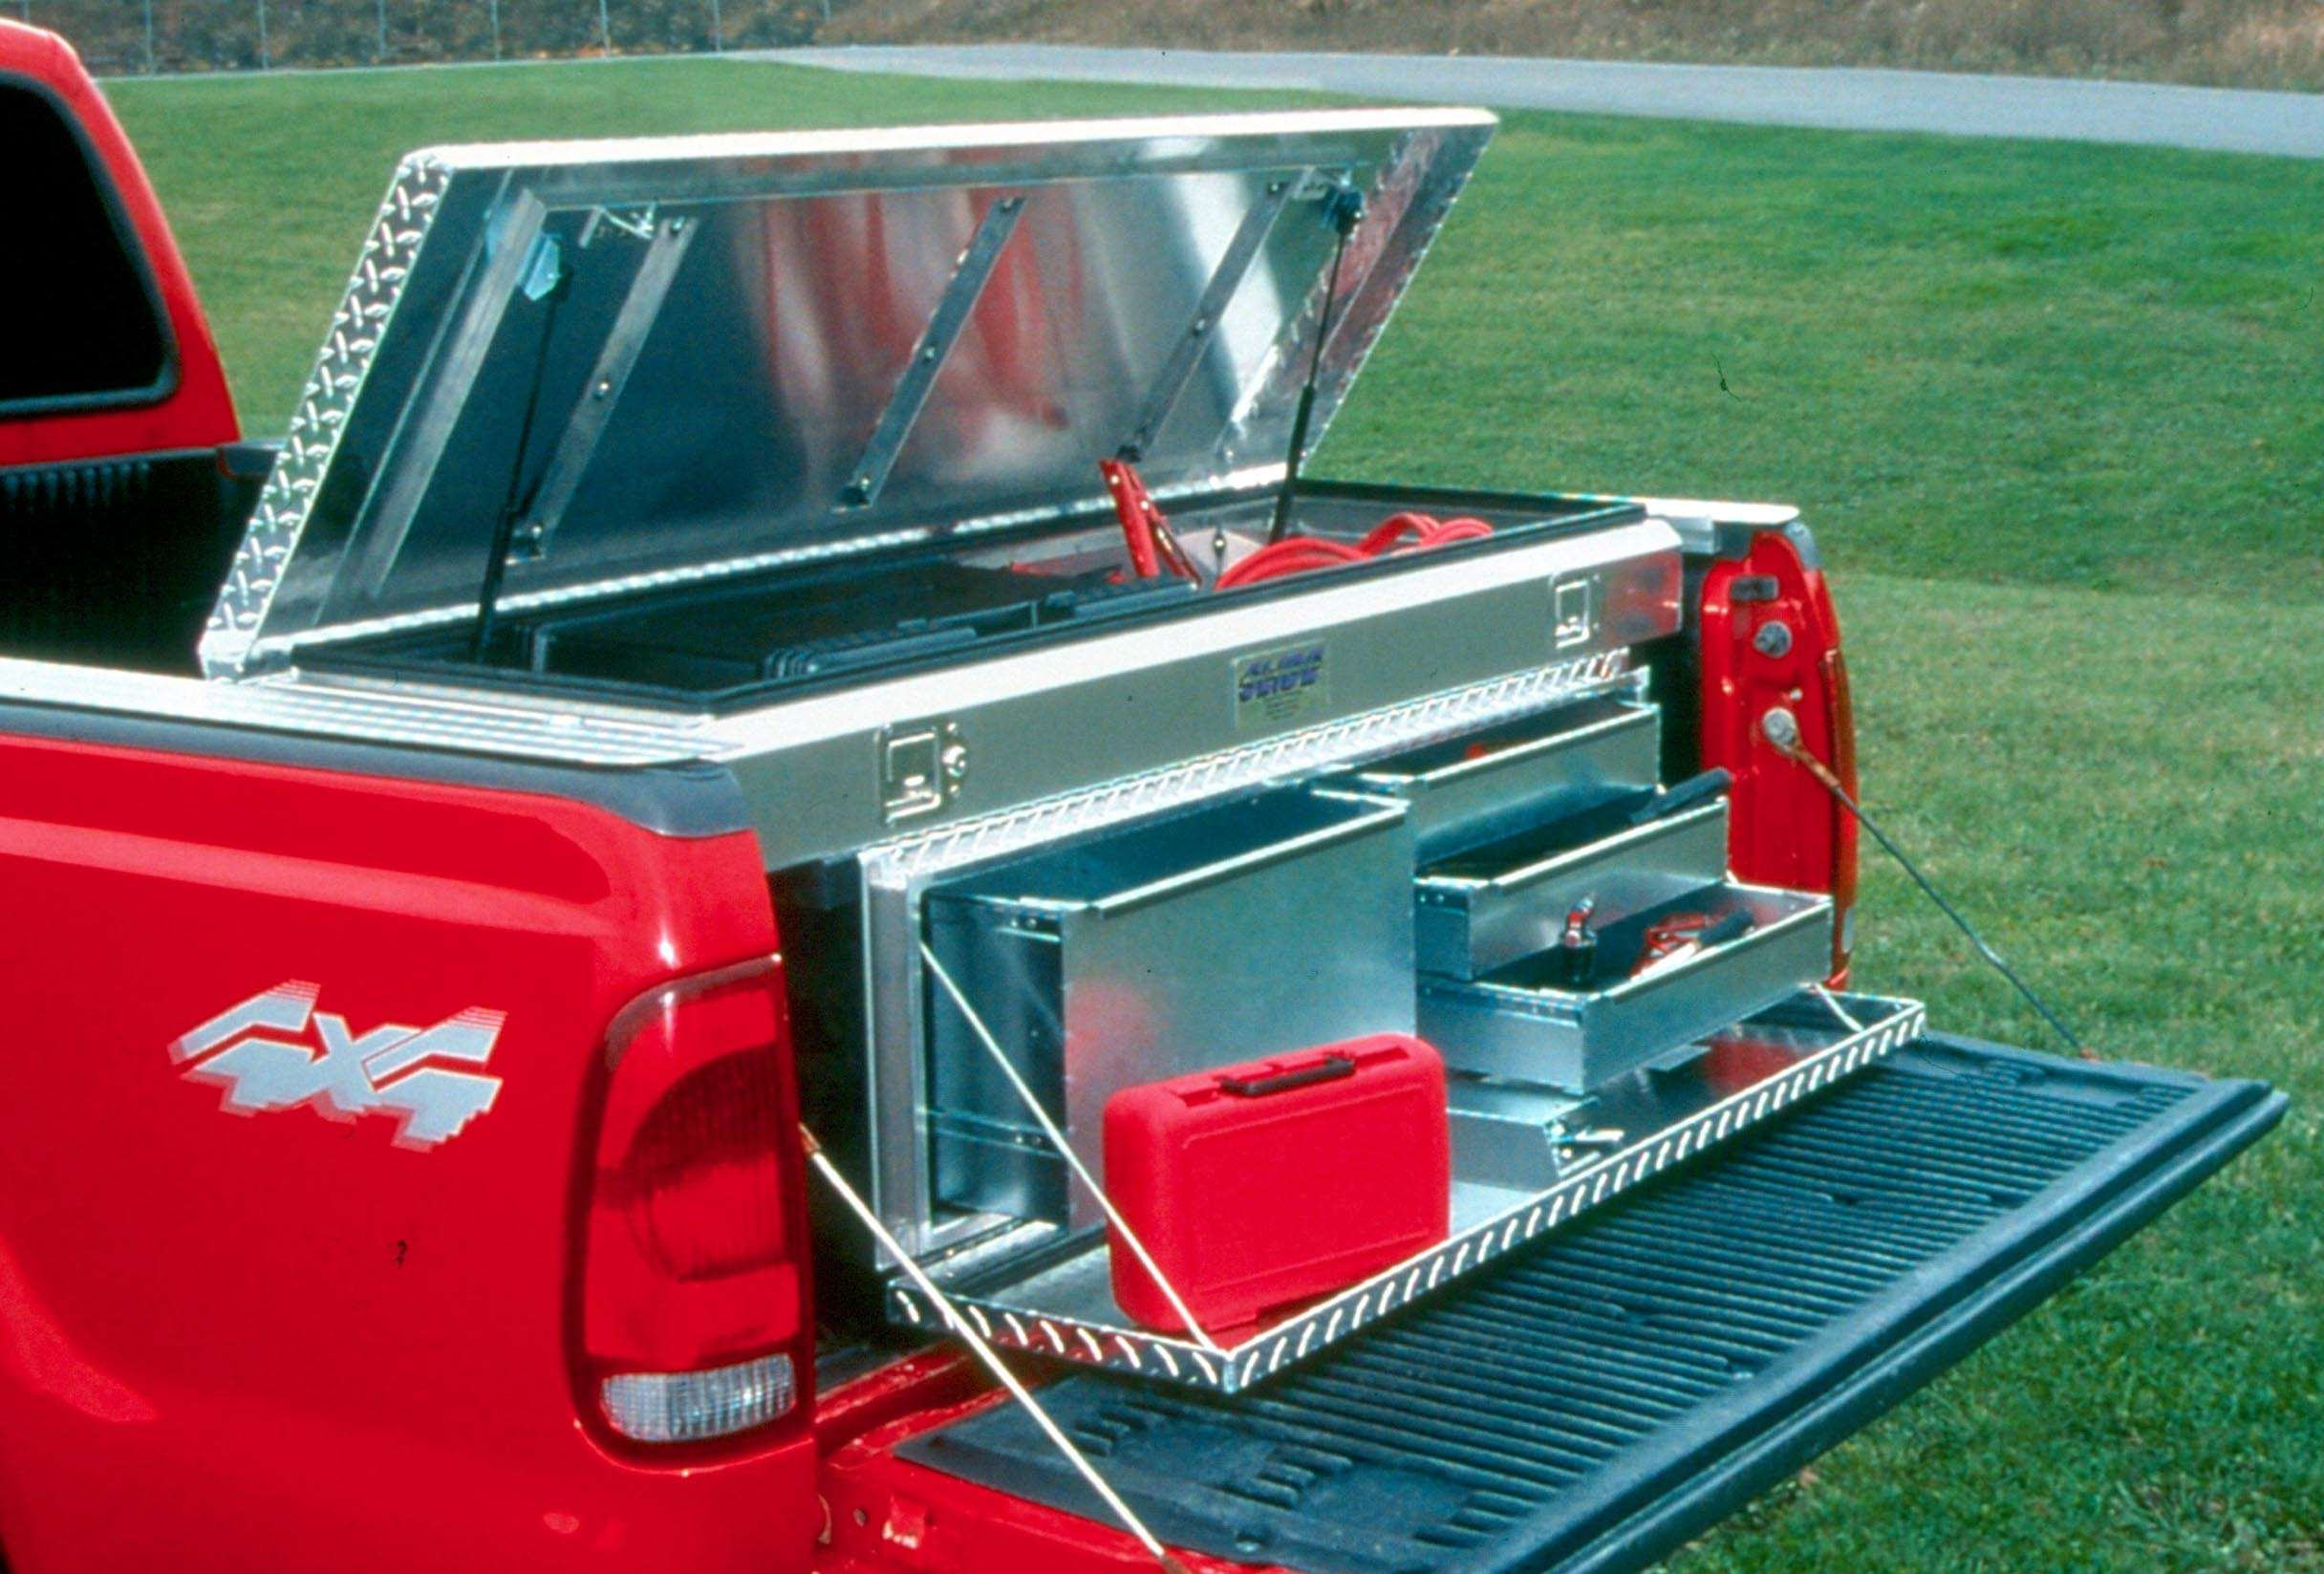 Truck Bed Tool Storage Ideas Images & Tool Storage: Truck Bed Tool Storage Ideas